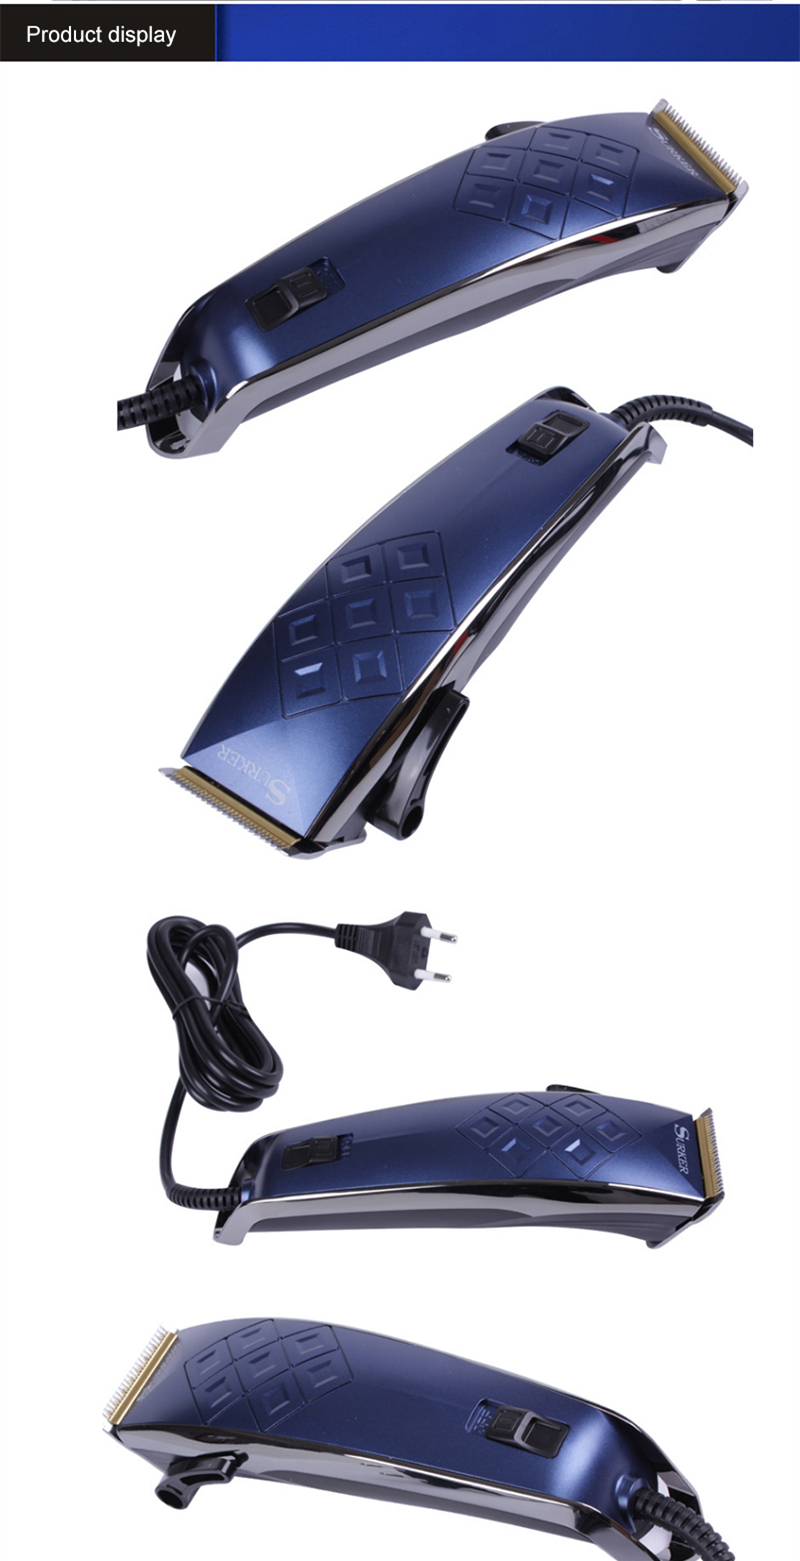 SURKER SK-5608 Adjustable Rechargeable Hair Clipper Electric